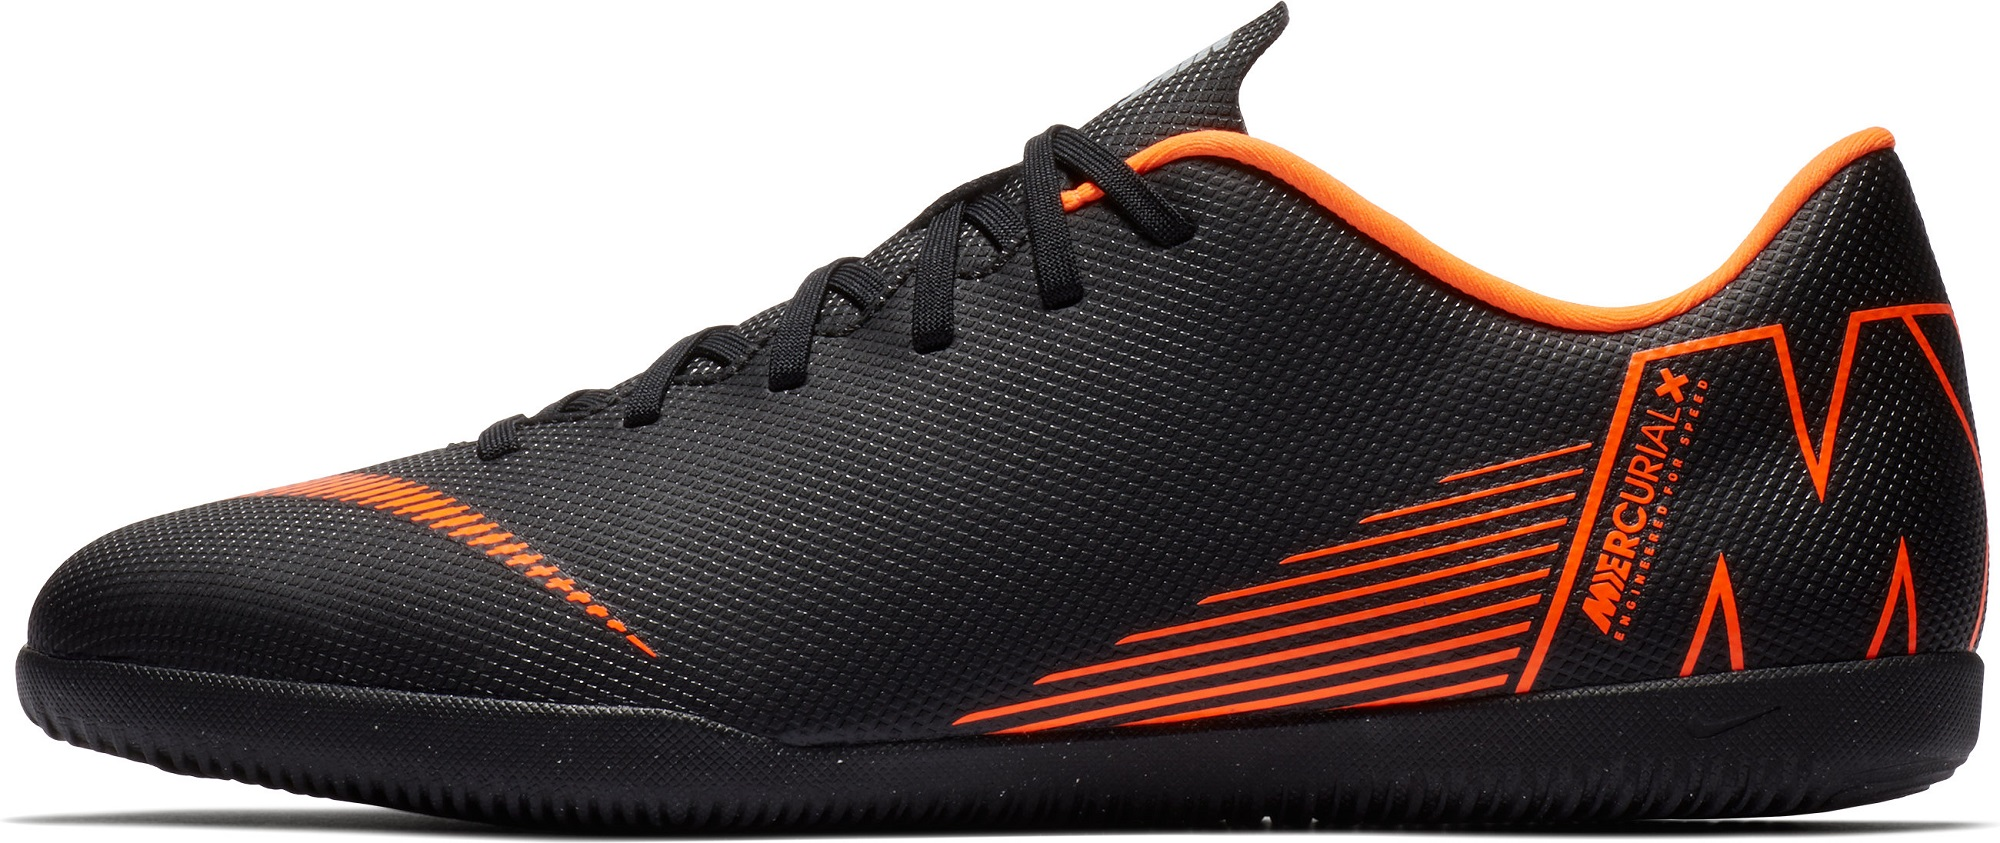 Nike Бутсы мужские Nike Vaporx 12 Club IC бутсы nike бутсы jr mercurialx vapor xi ic